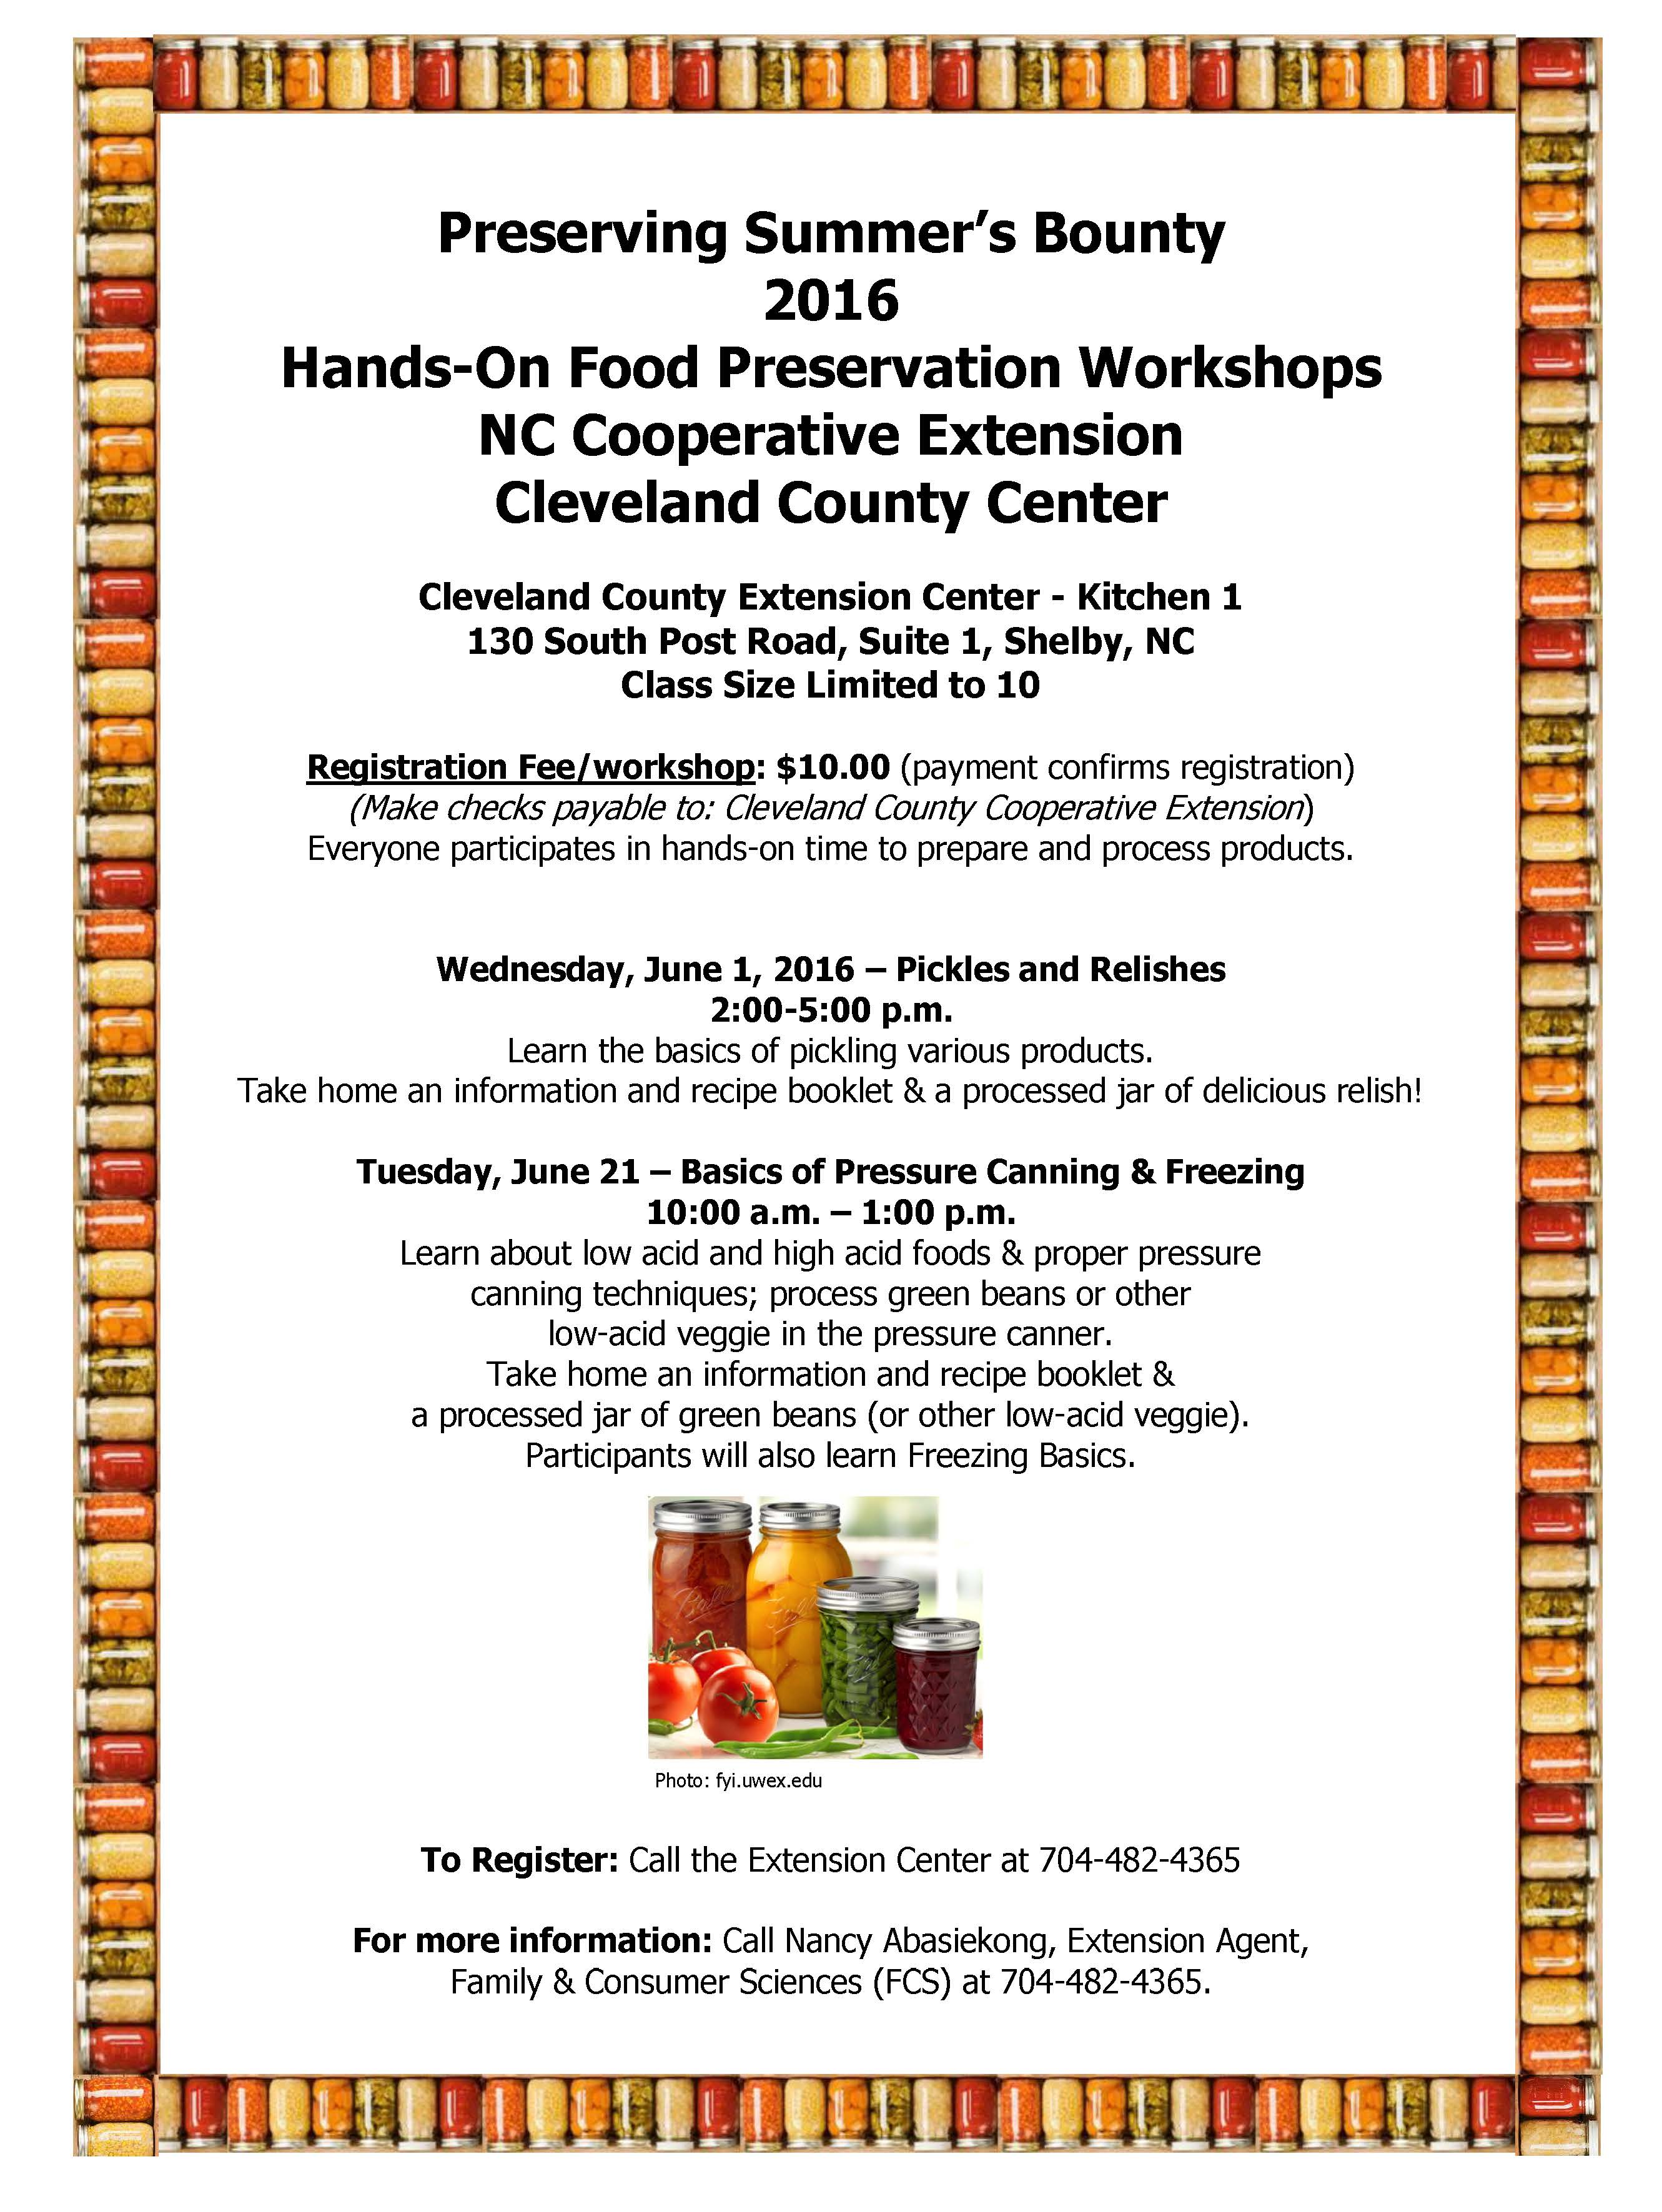 Food preservation classes offered north carolina cooperative extension food preservation flyer 2016 8x11 forumfinder Choice Image